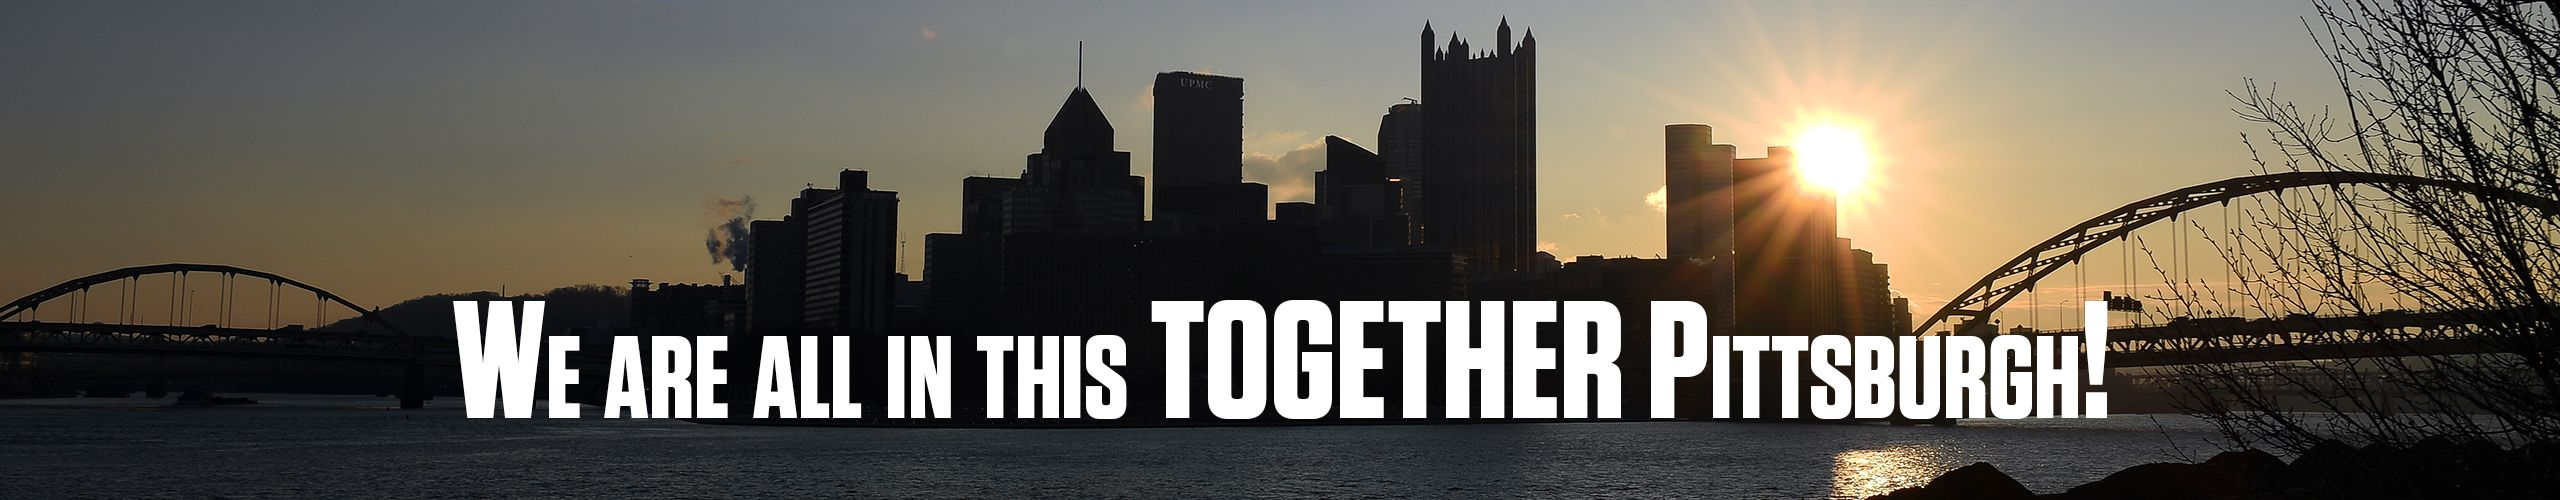 2560x500_we_are_all_in_this_together_pittsburgh